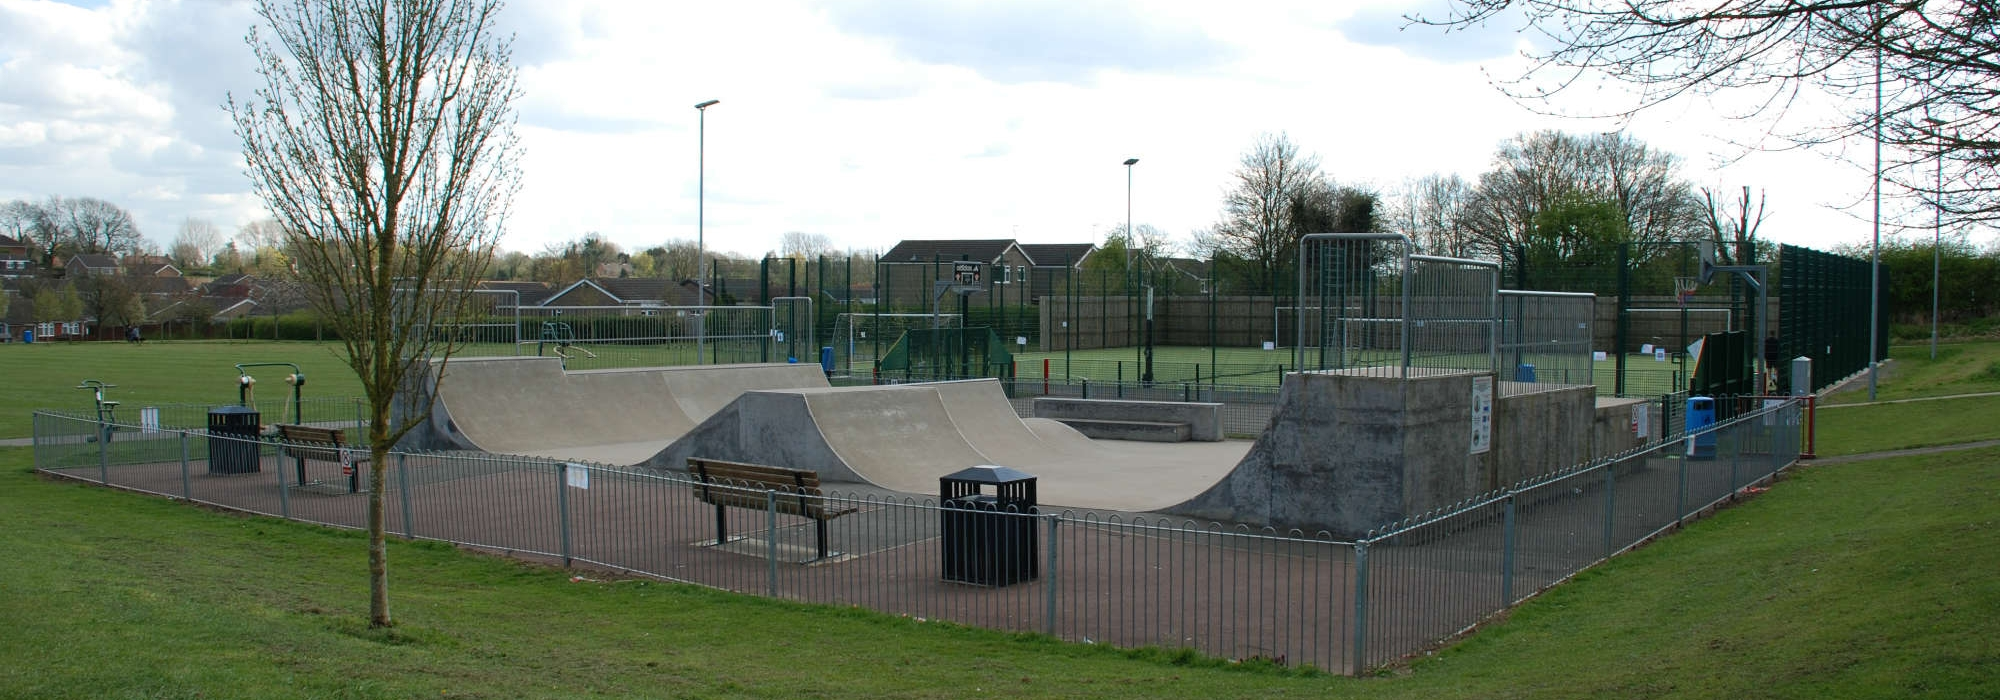 Activity Park. a gated skatepark, with various skating apparatus and a bench